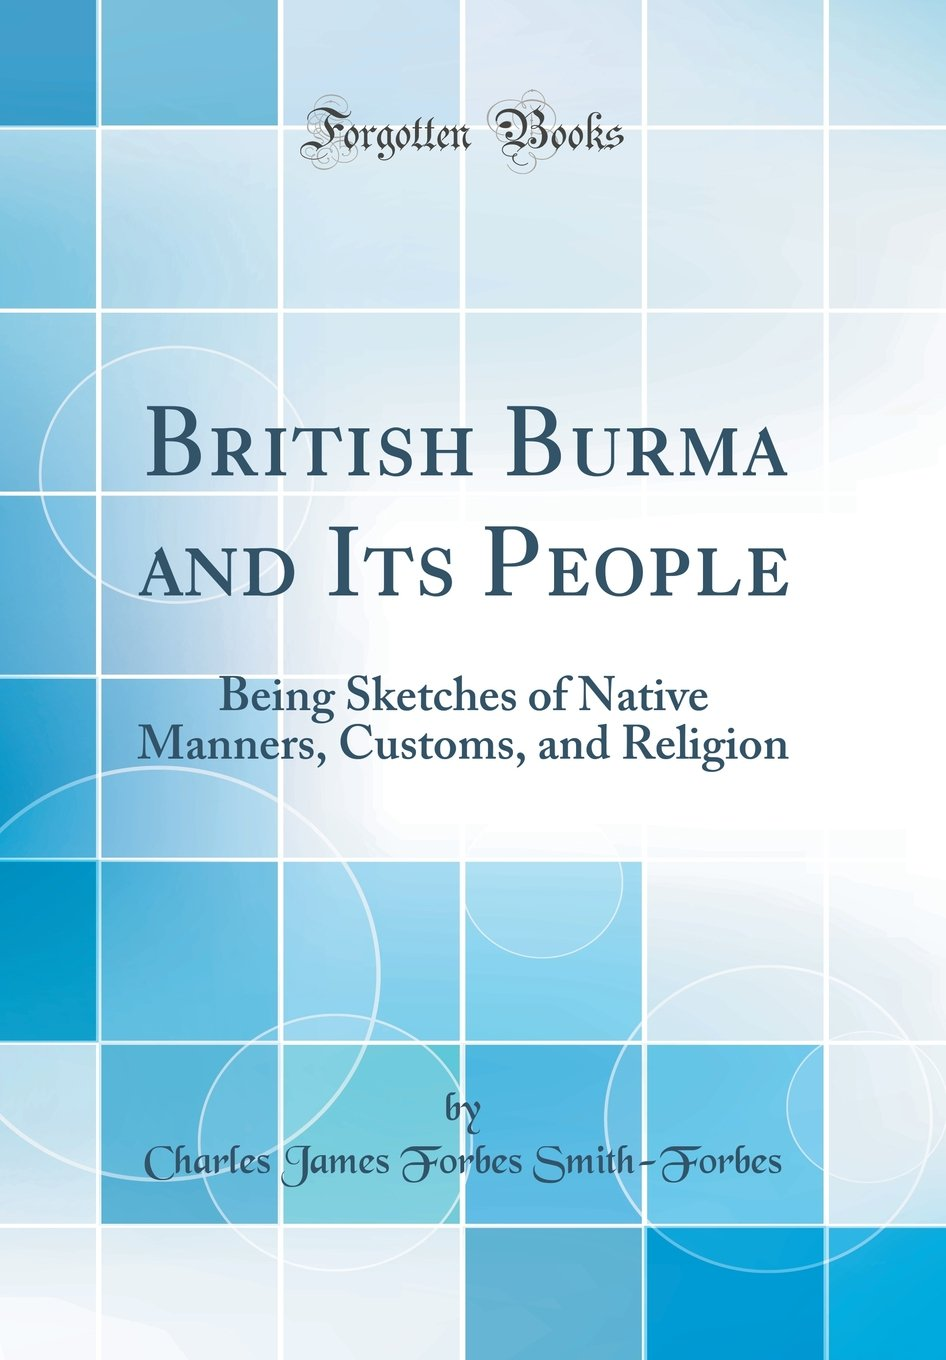 British Burma and Its People: Being Sketches of Native Manners, Customs, and Religion (Classic Reprint) ebook